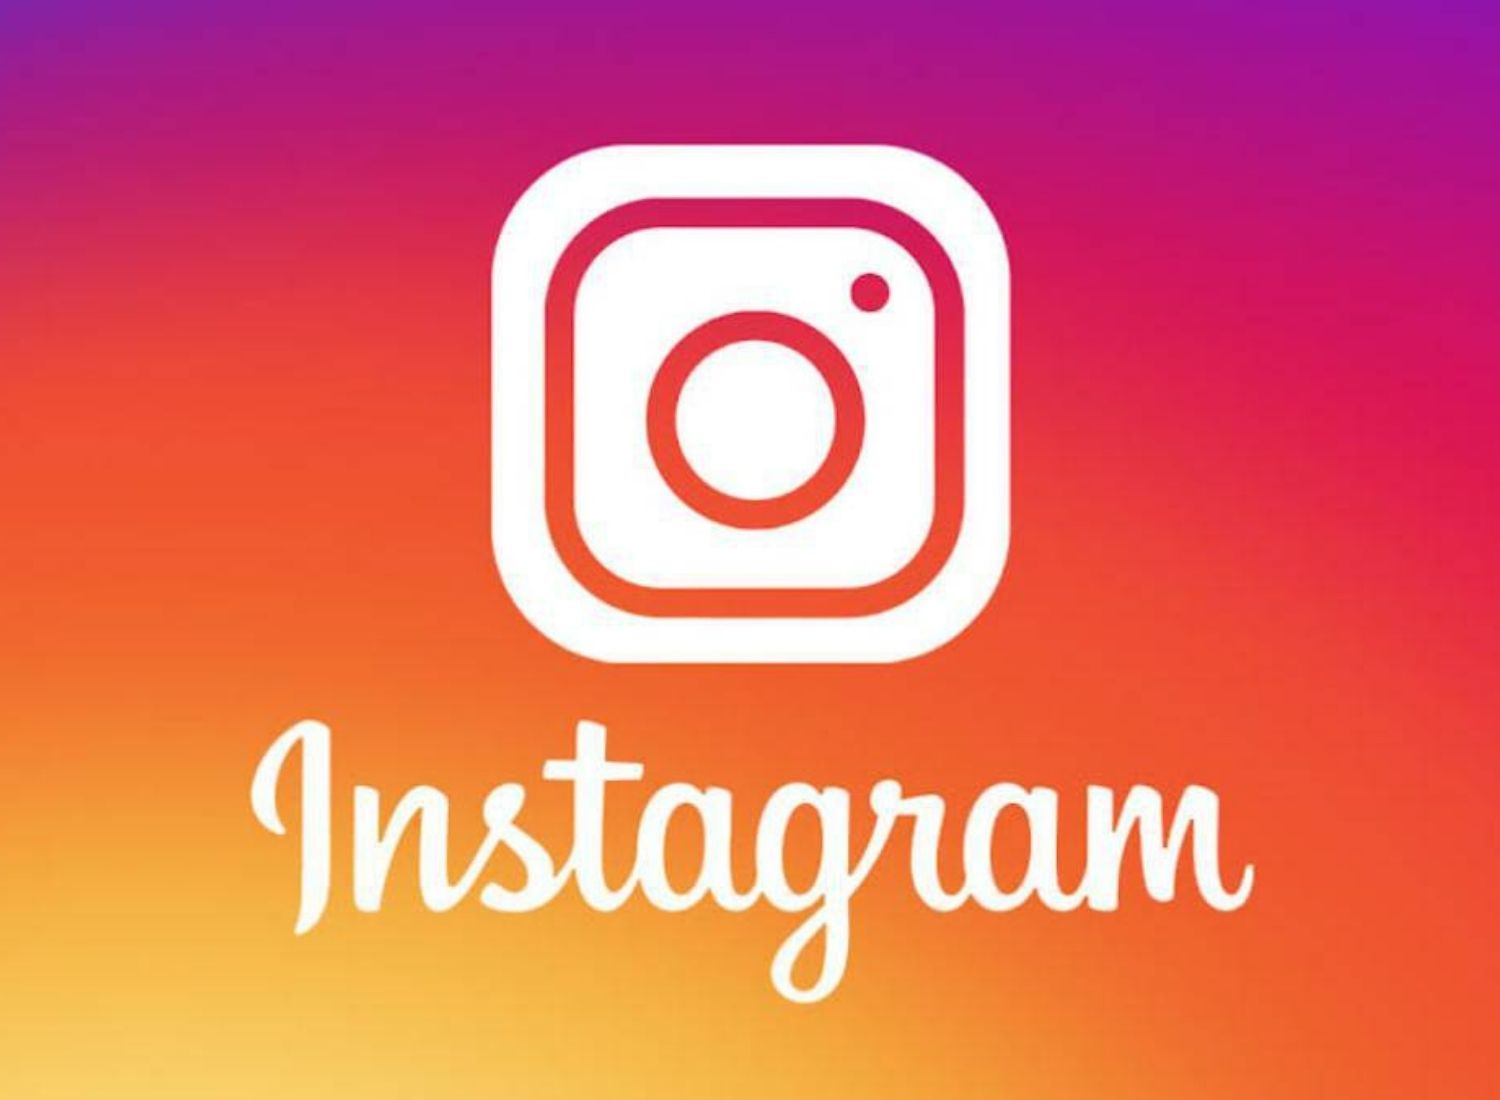 6 Tricks To Get Free Instagram Followers In 2020 - Real And Fast